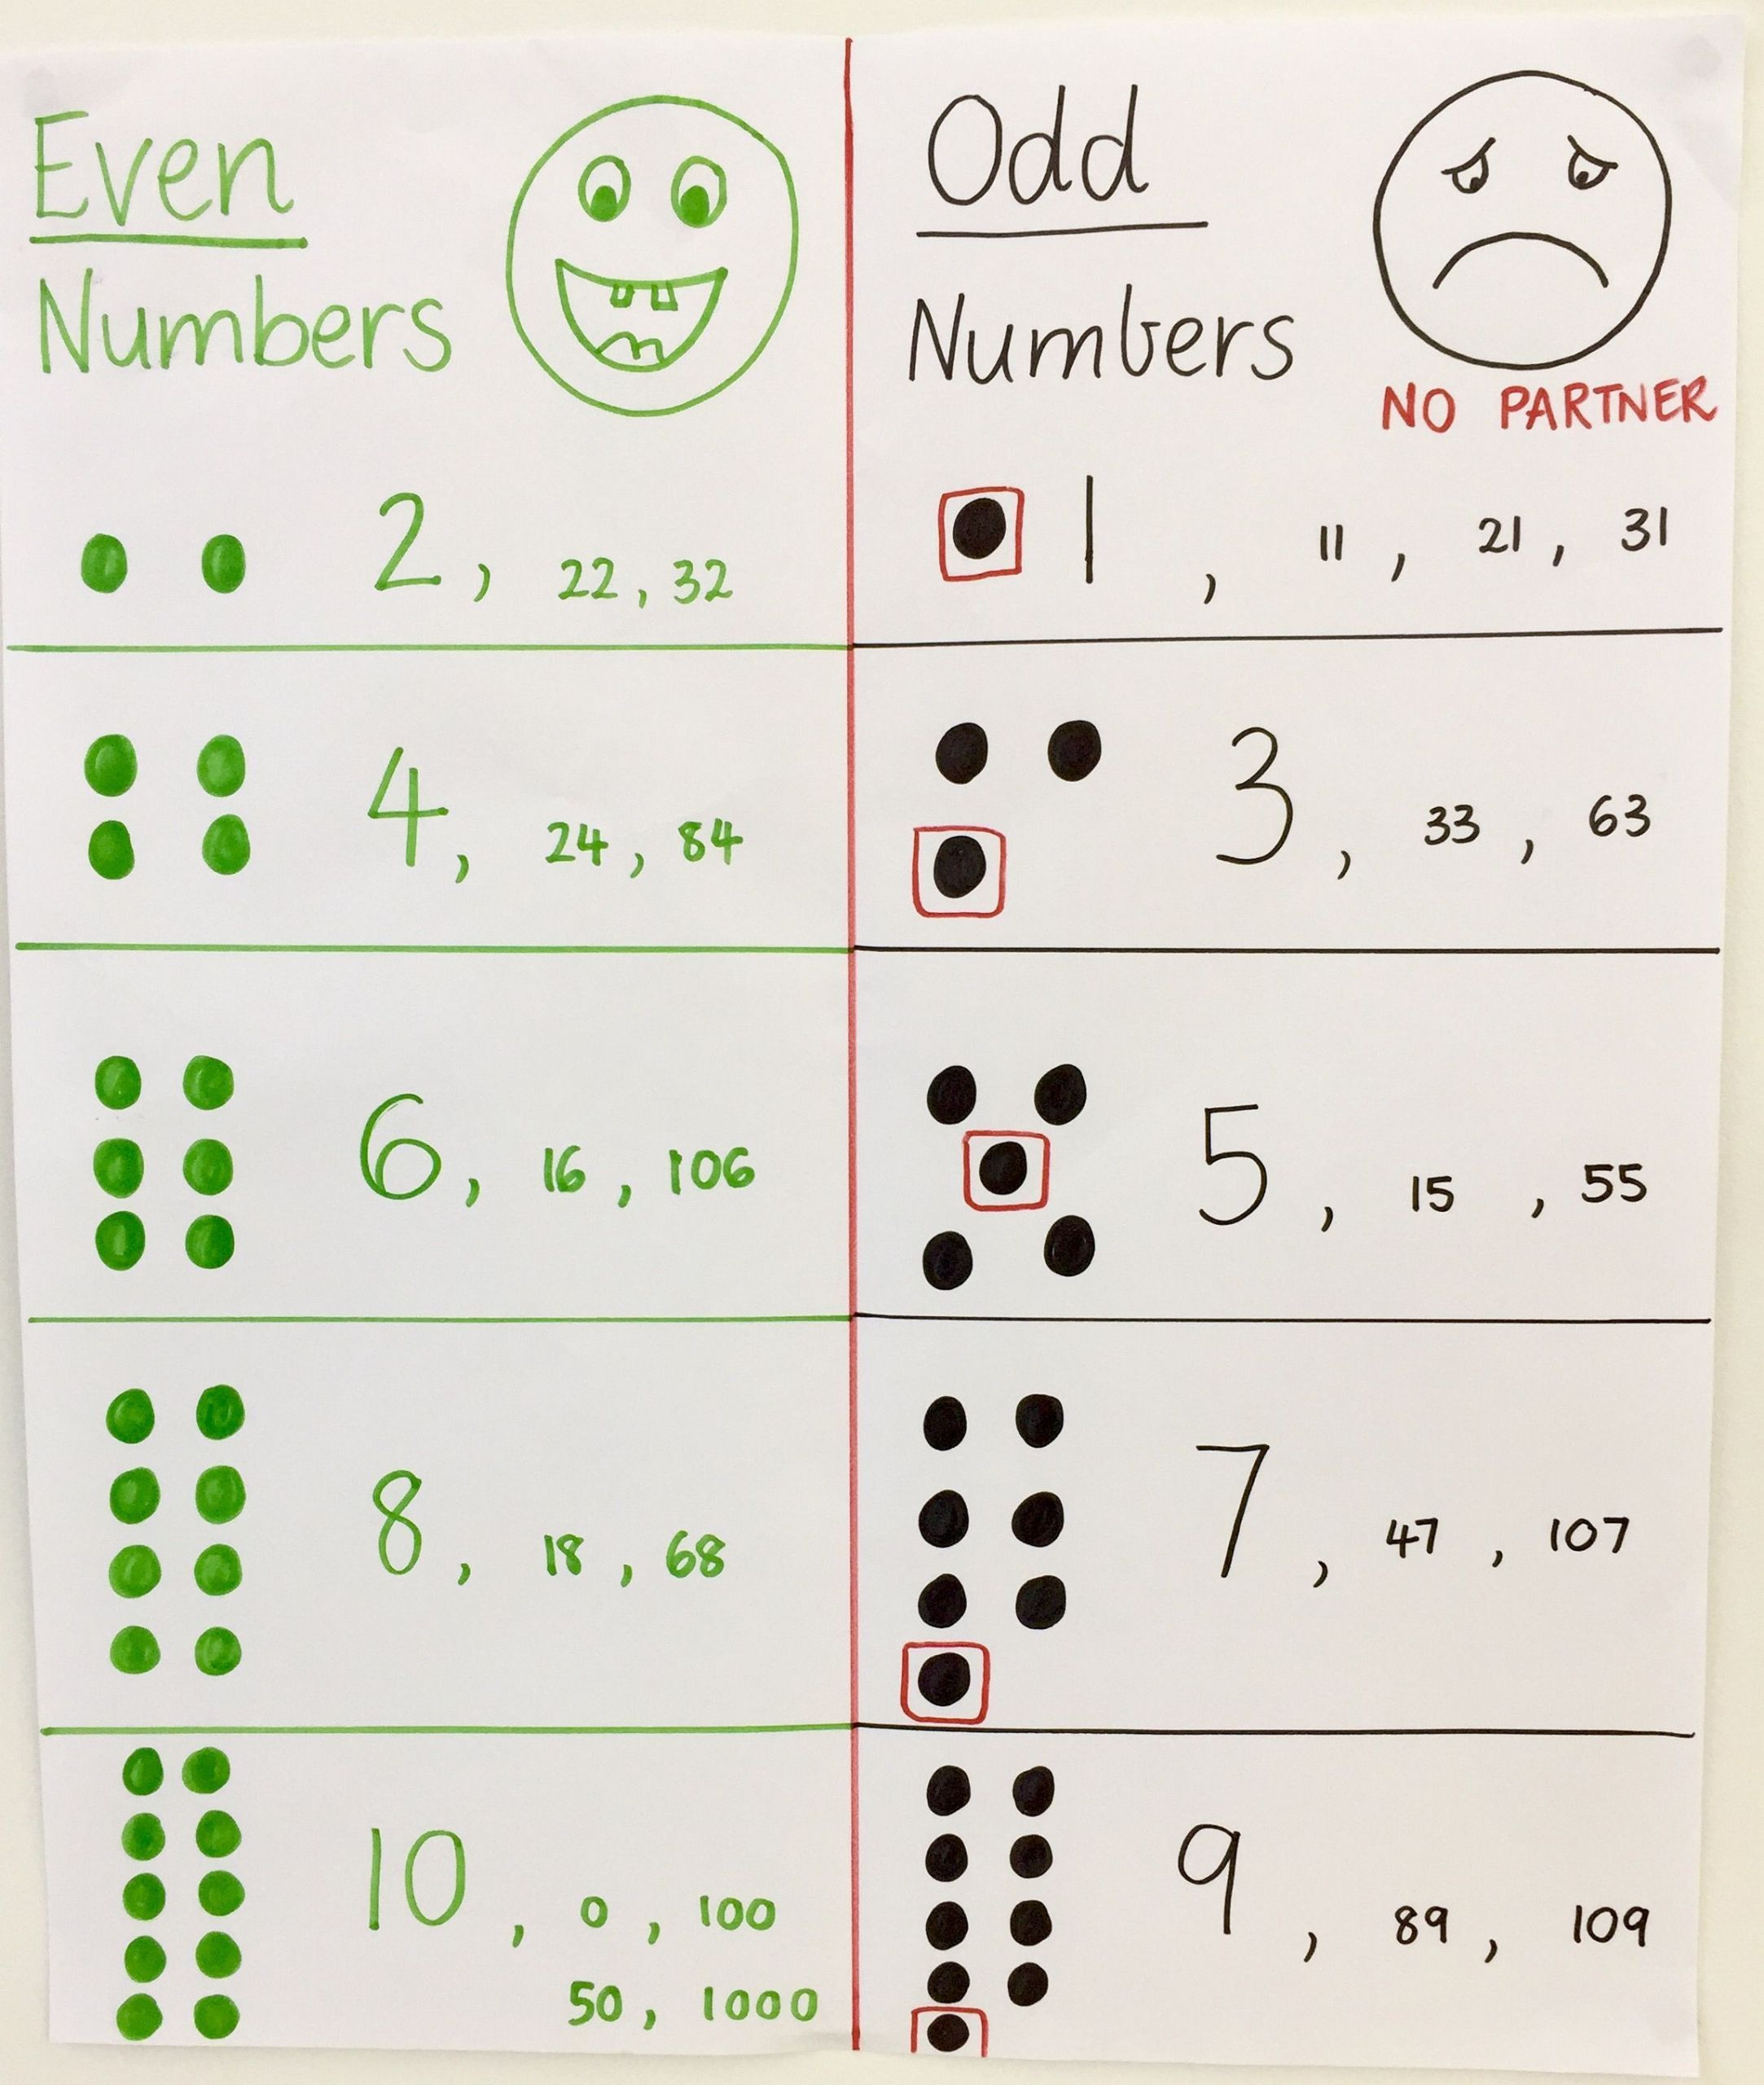 hight resolution of 6 even and Odd Numbers Worksheet Printable in 2020   Number worksheets